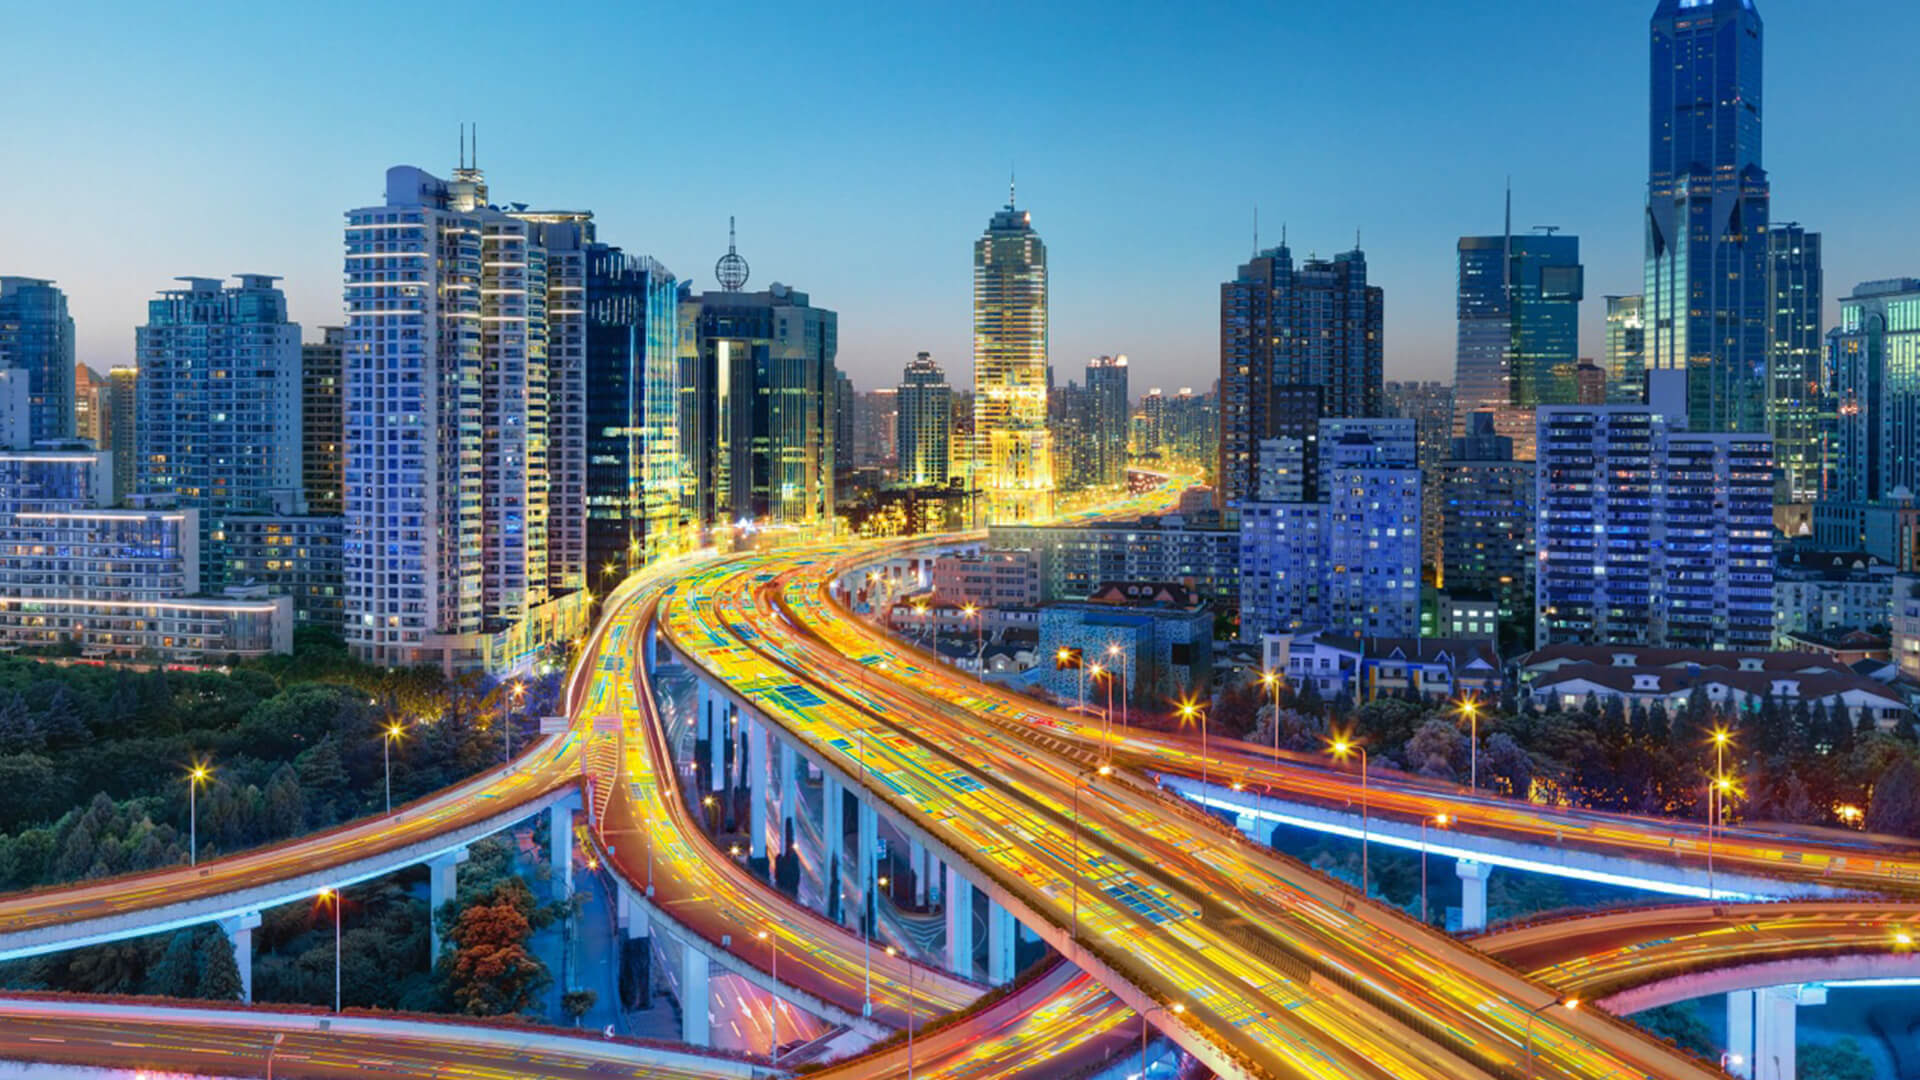 Brightly lit highway in the heart of the city, advertising shot for Intel.